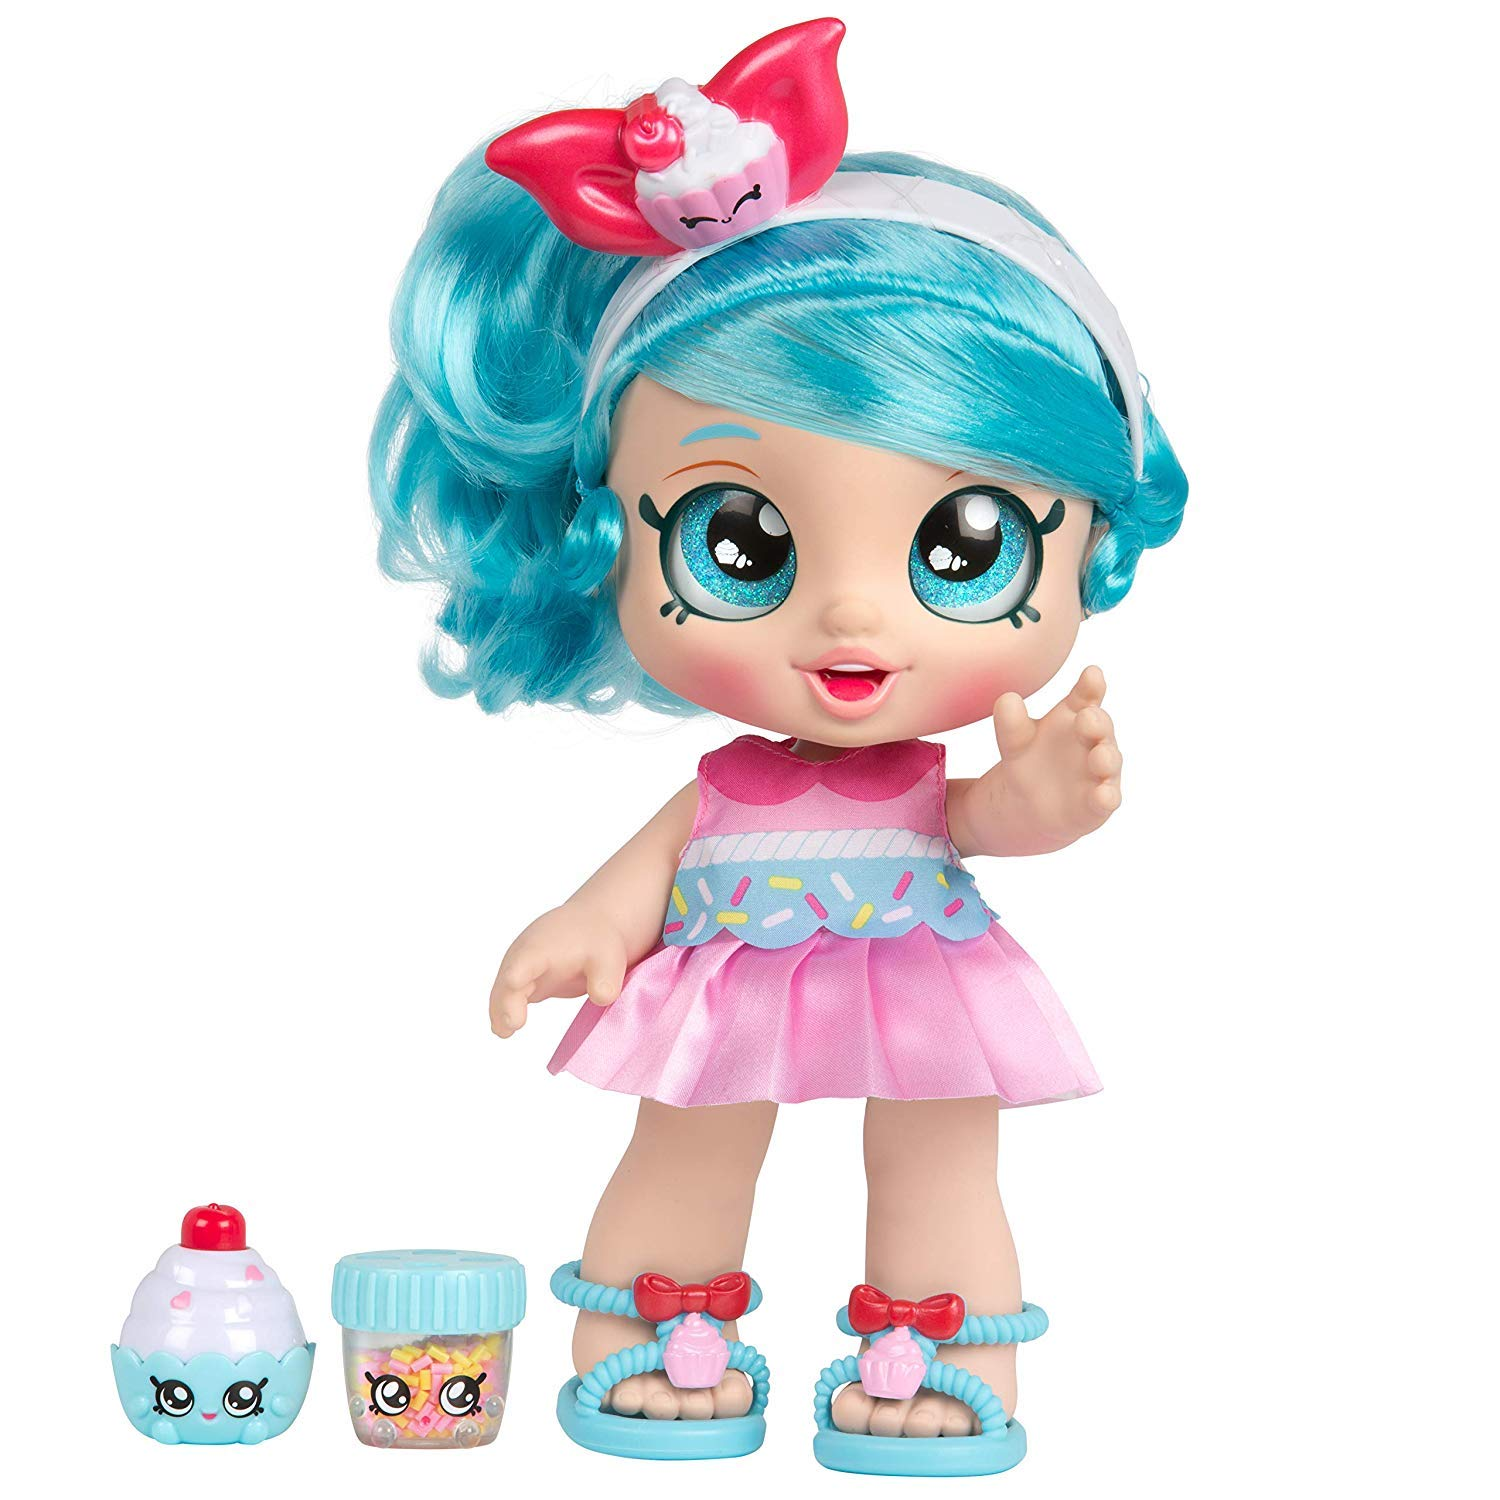 Kindi Kids Snack Time Friends Toddler Jessicake Doll